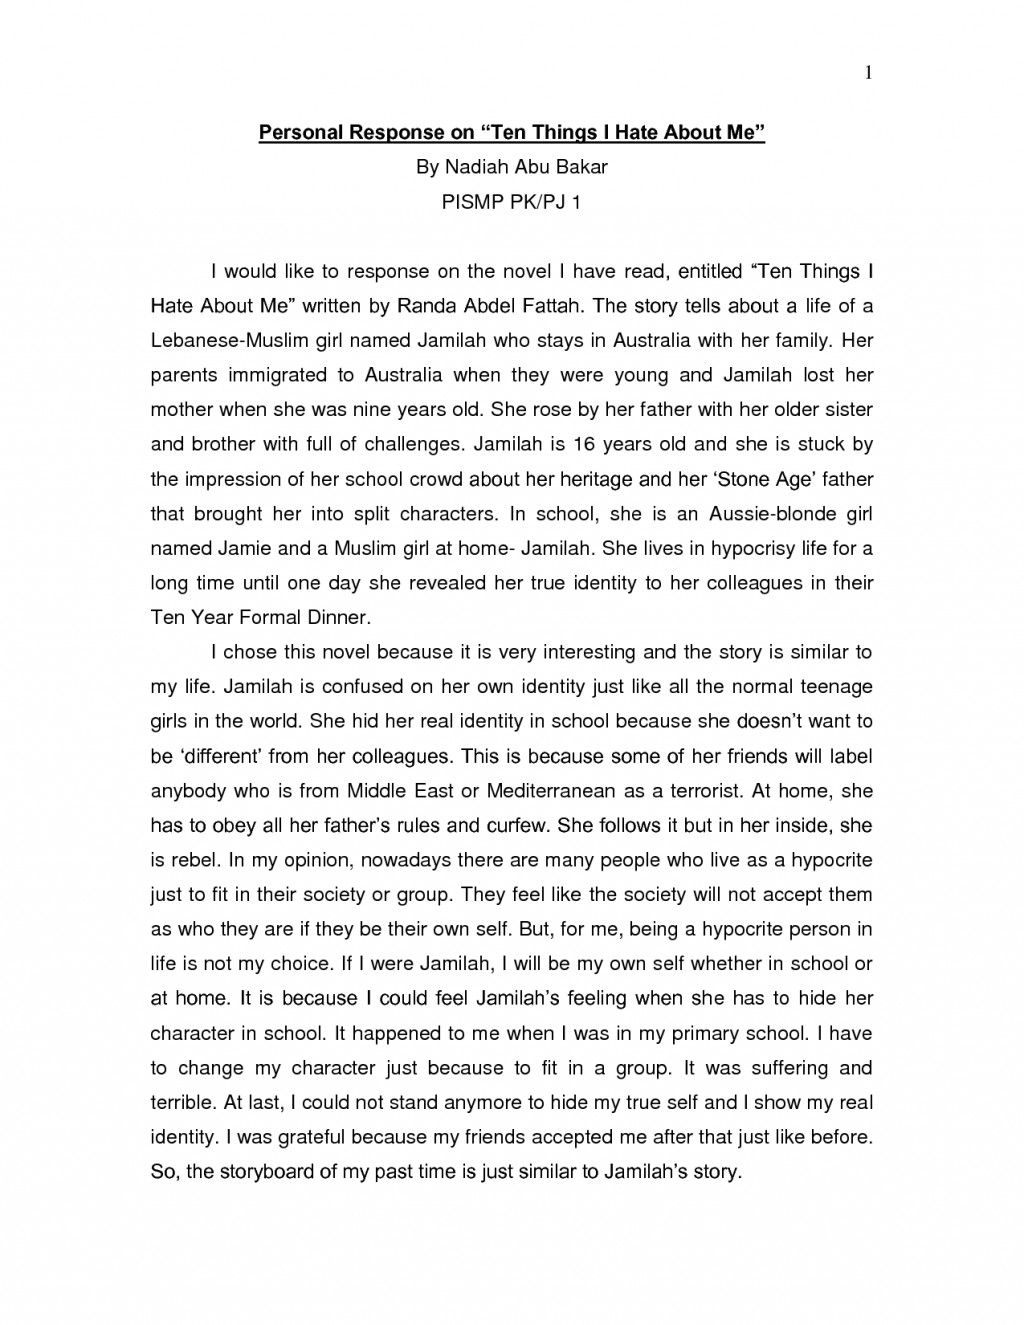 002 Reflective Essays Essay Example Writing Write Best Guide Mp9fs In The First Person About My Course Reflection Class Skills Tips Your Magnificent By Manzoor Mirza Pdf Analysis Definition Style Large